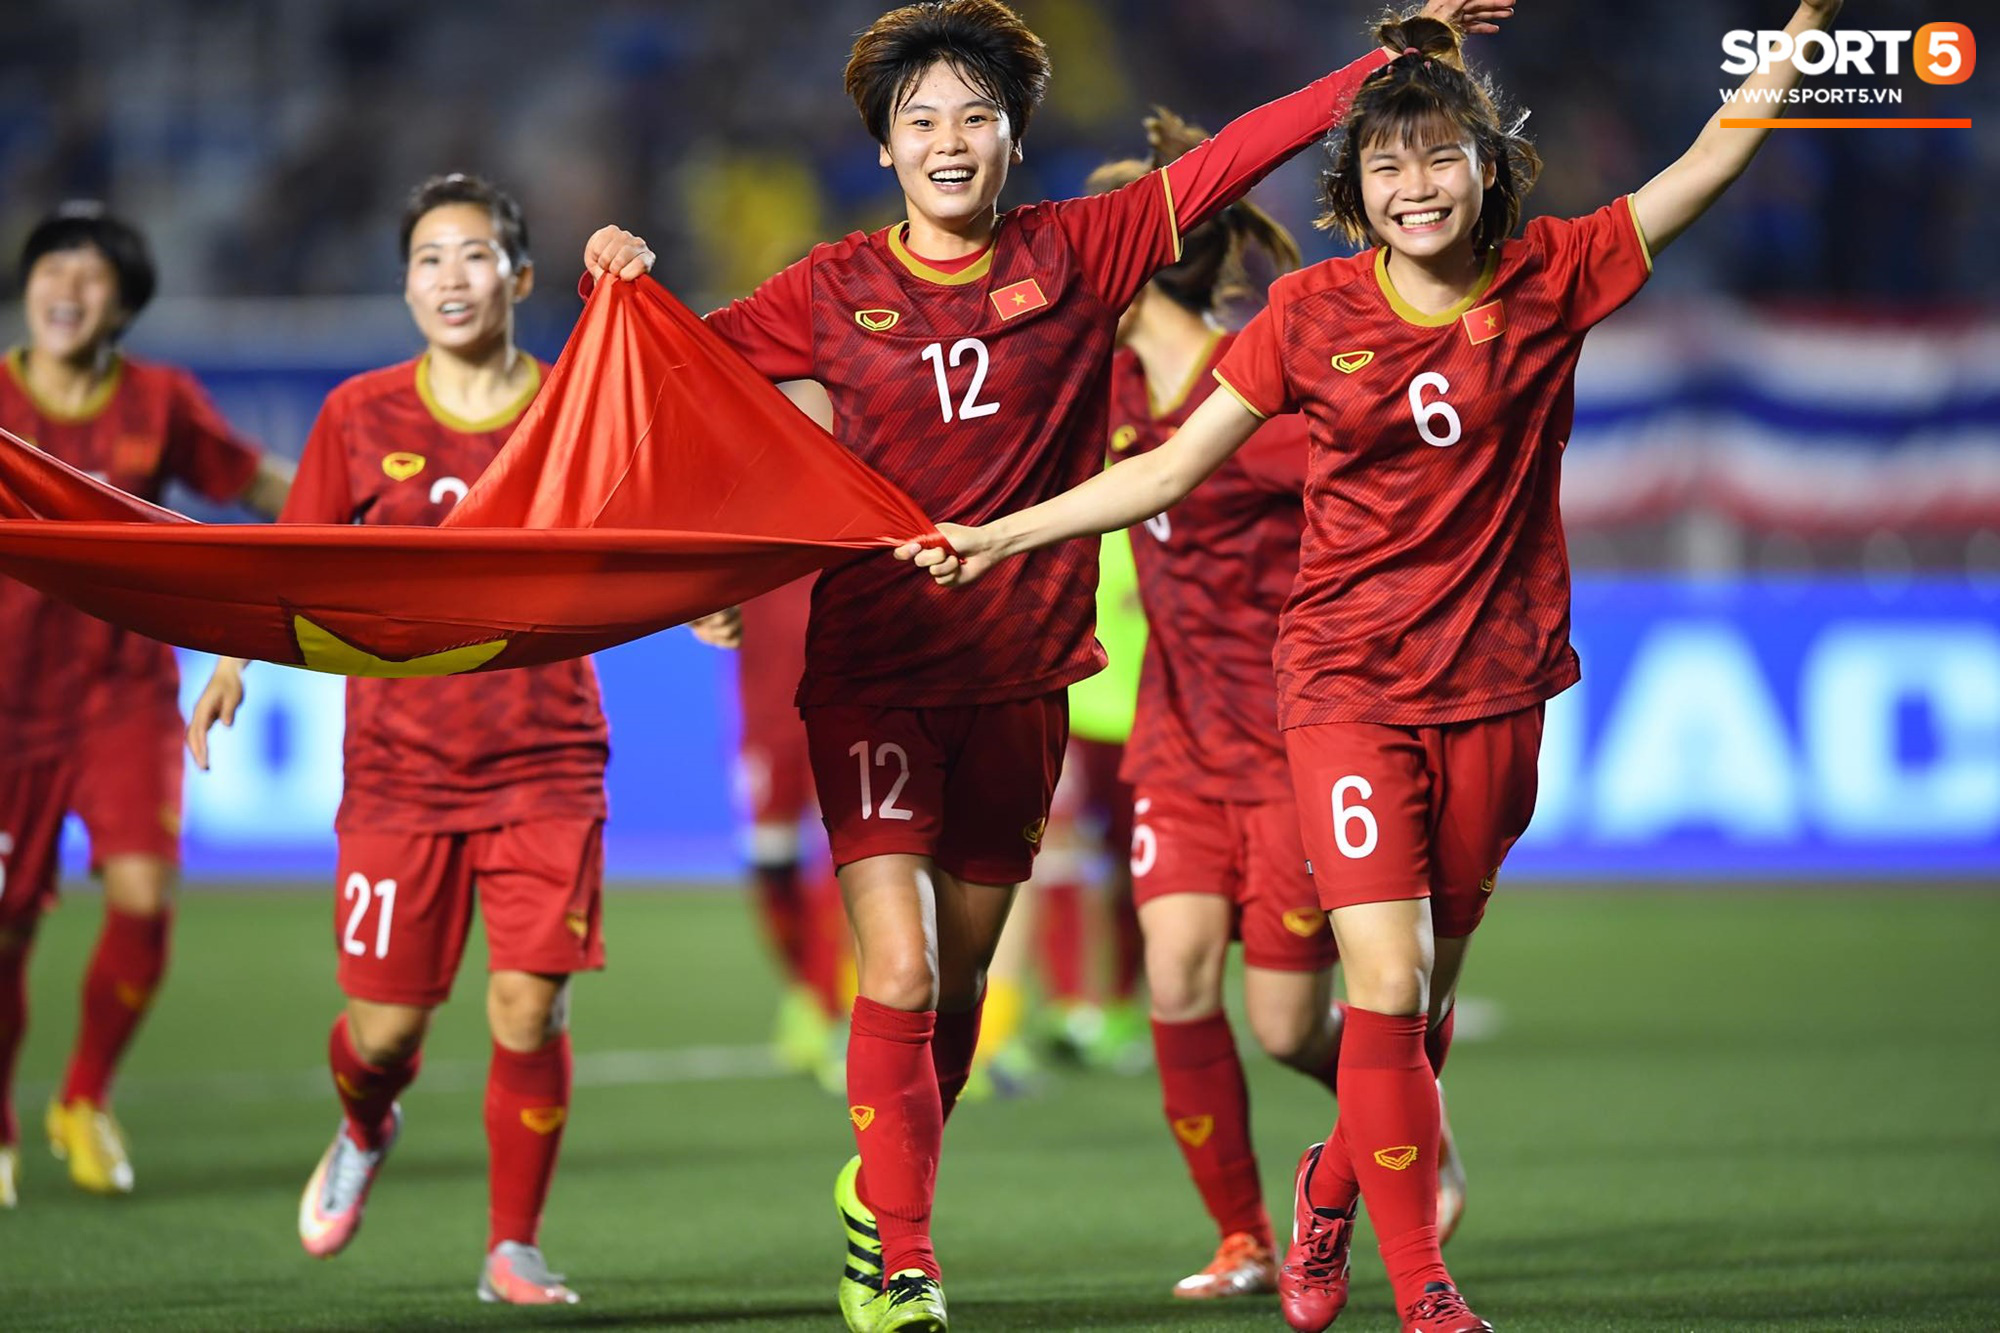 Vietnamese women's football holds the top 6 in Asia - Photo 1.